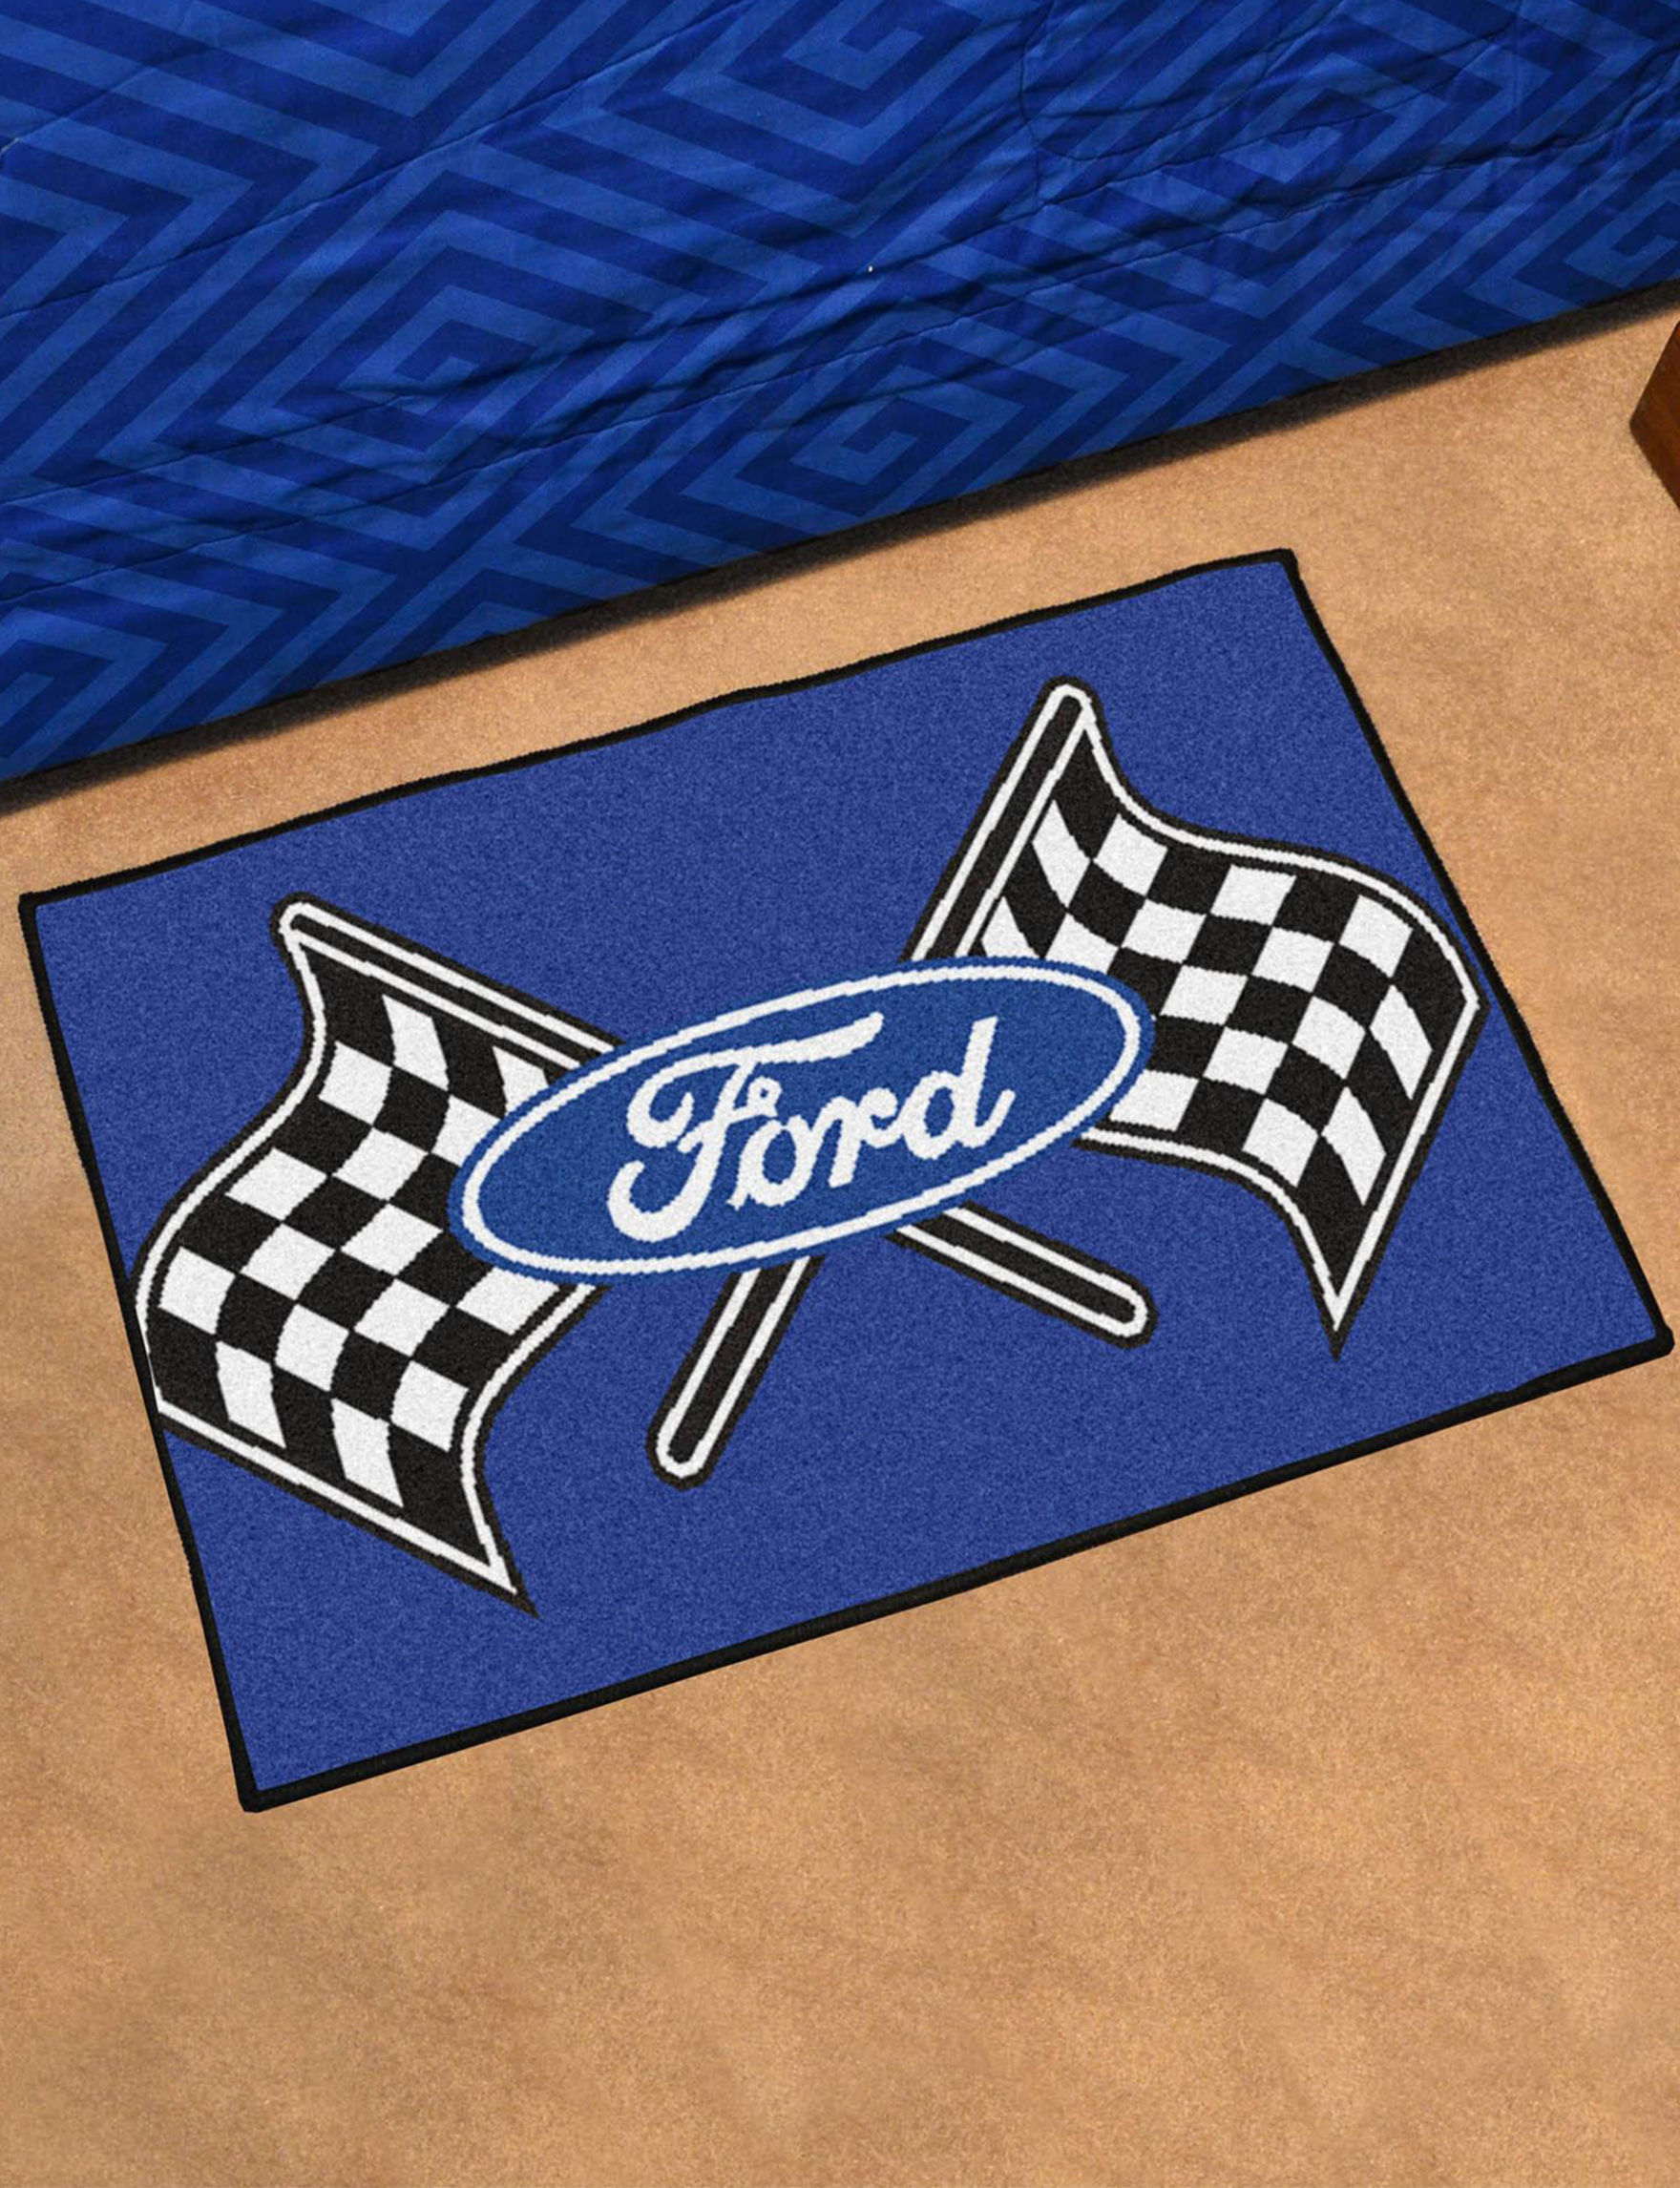 Fanmats Blue / White / Black Accent Rugs Rugs